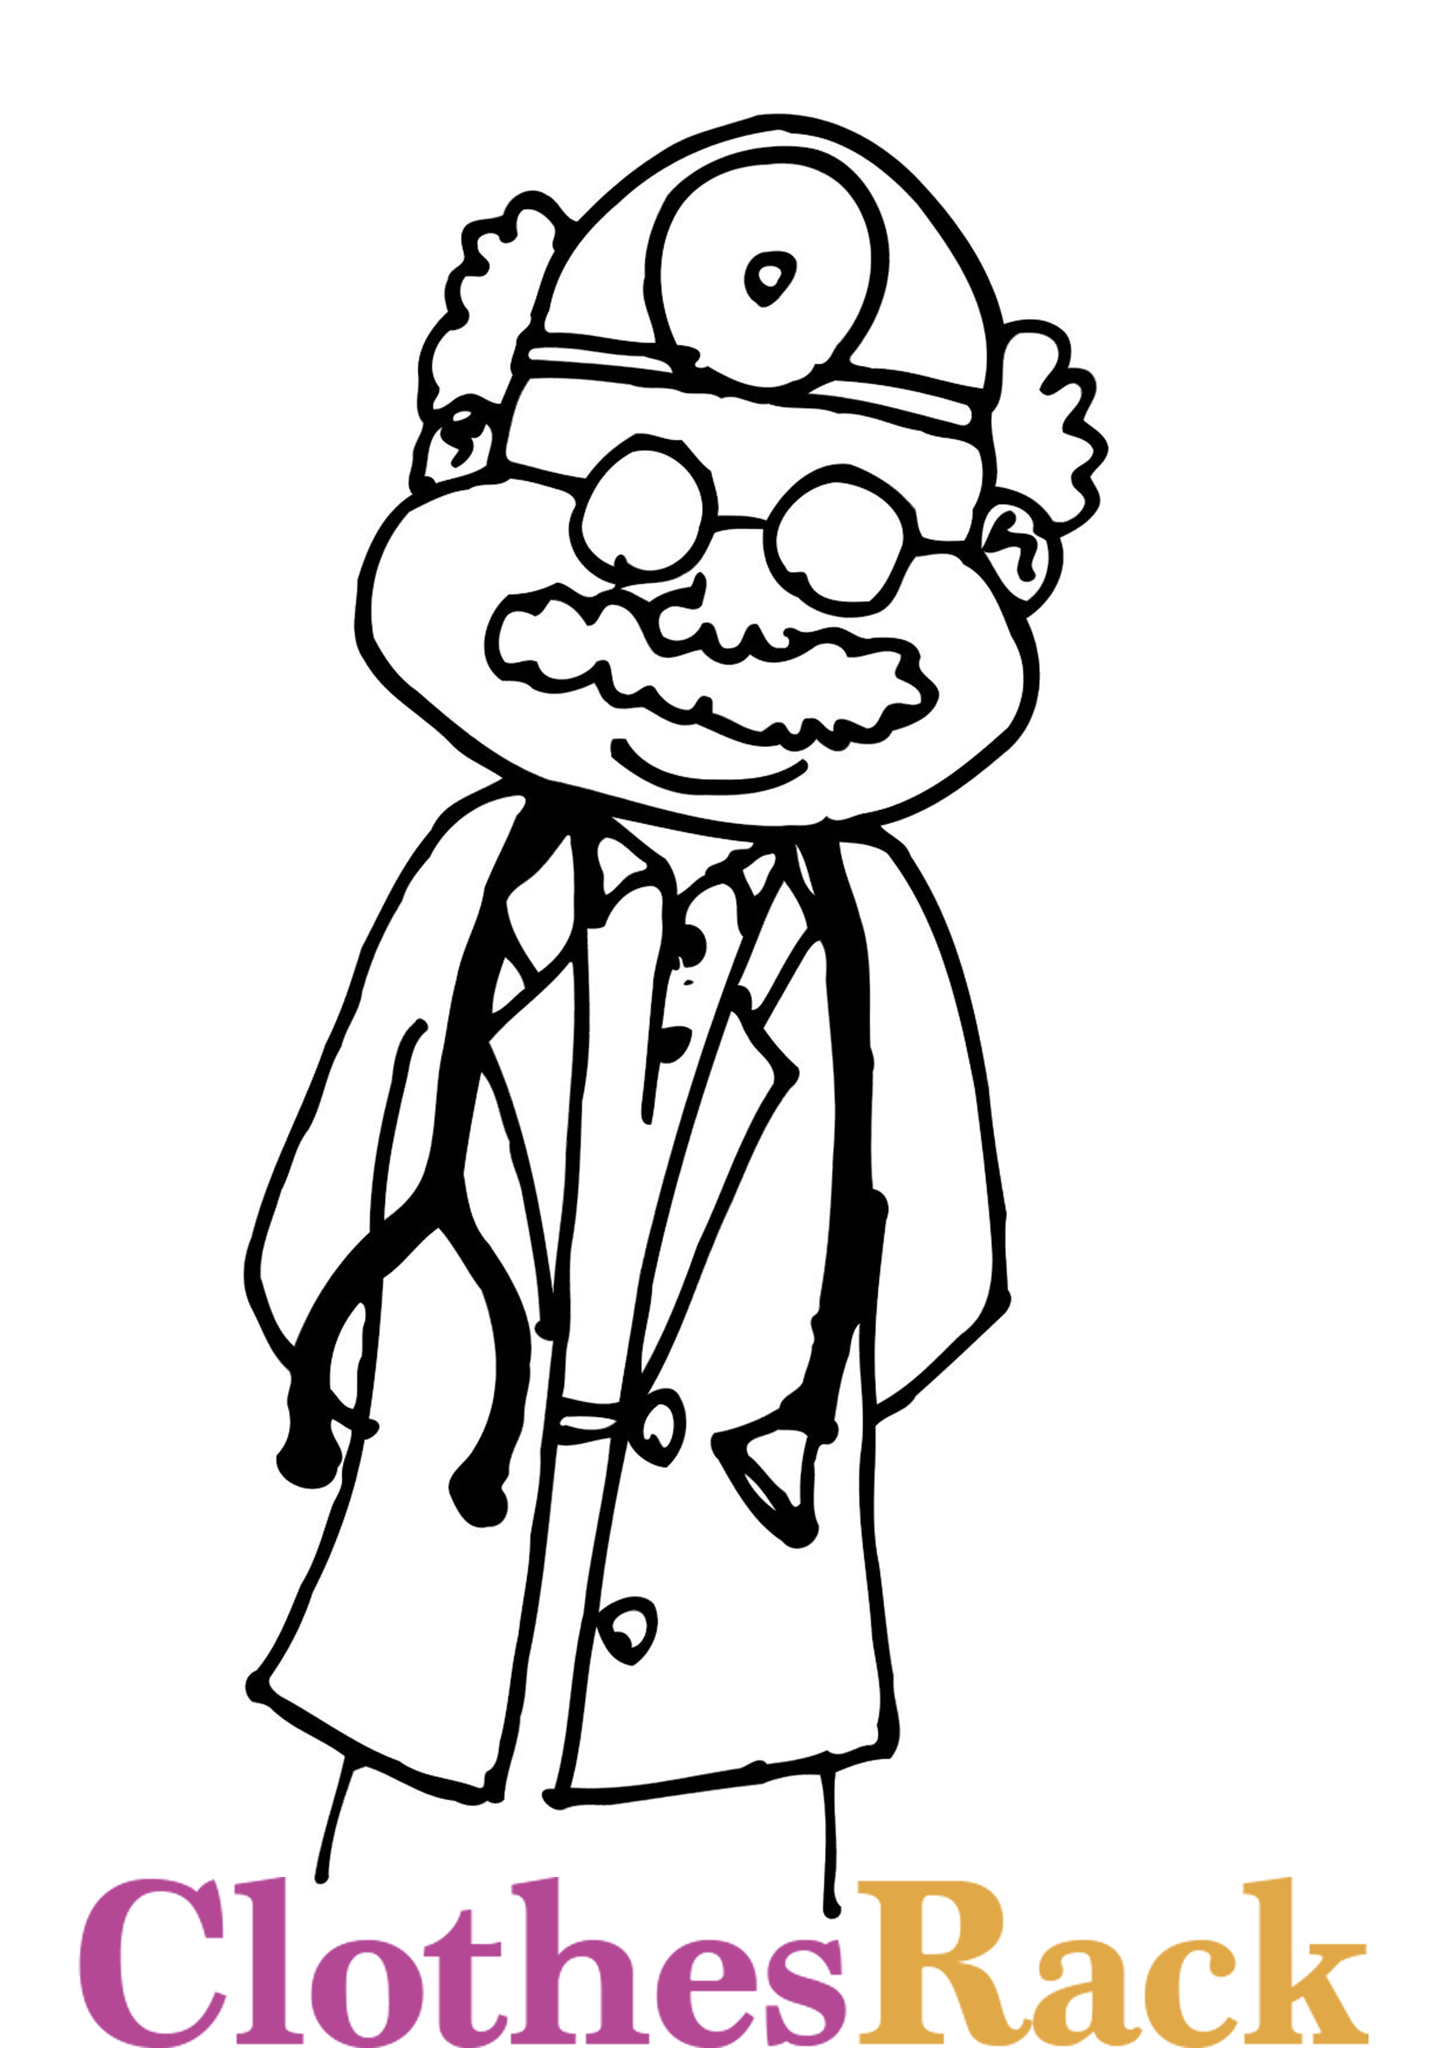 Doctor Colouring Page | Medicine Colouring Page | Medical Colouring Page